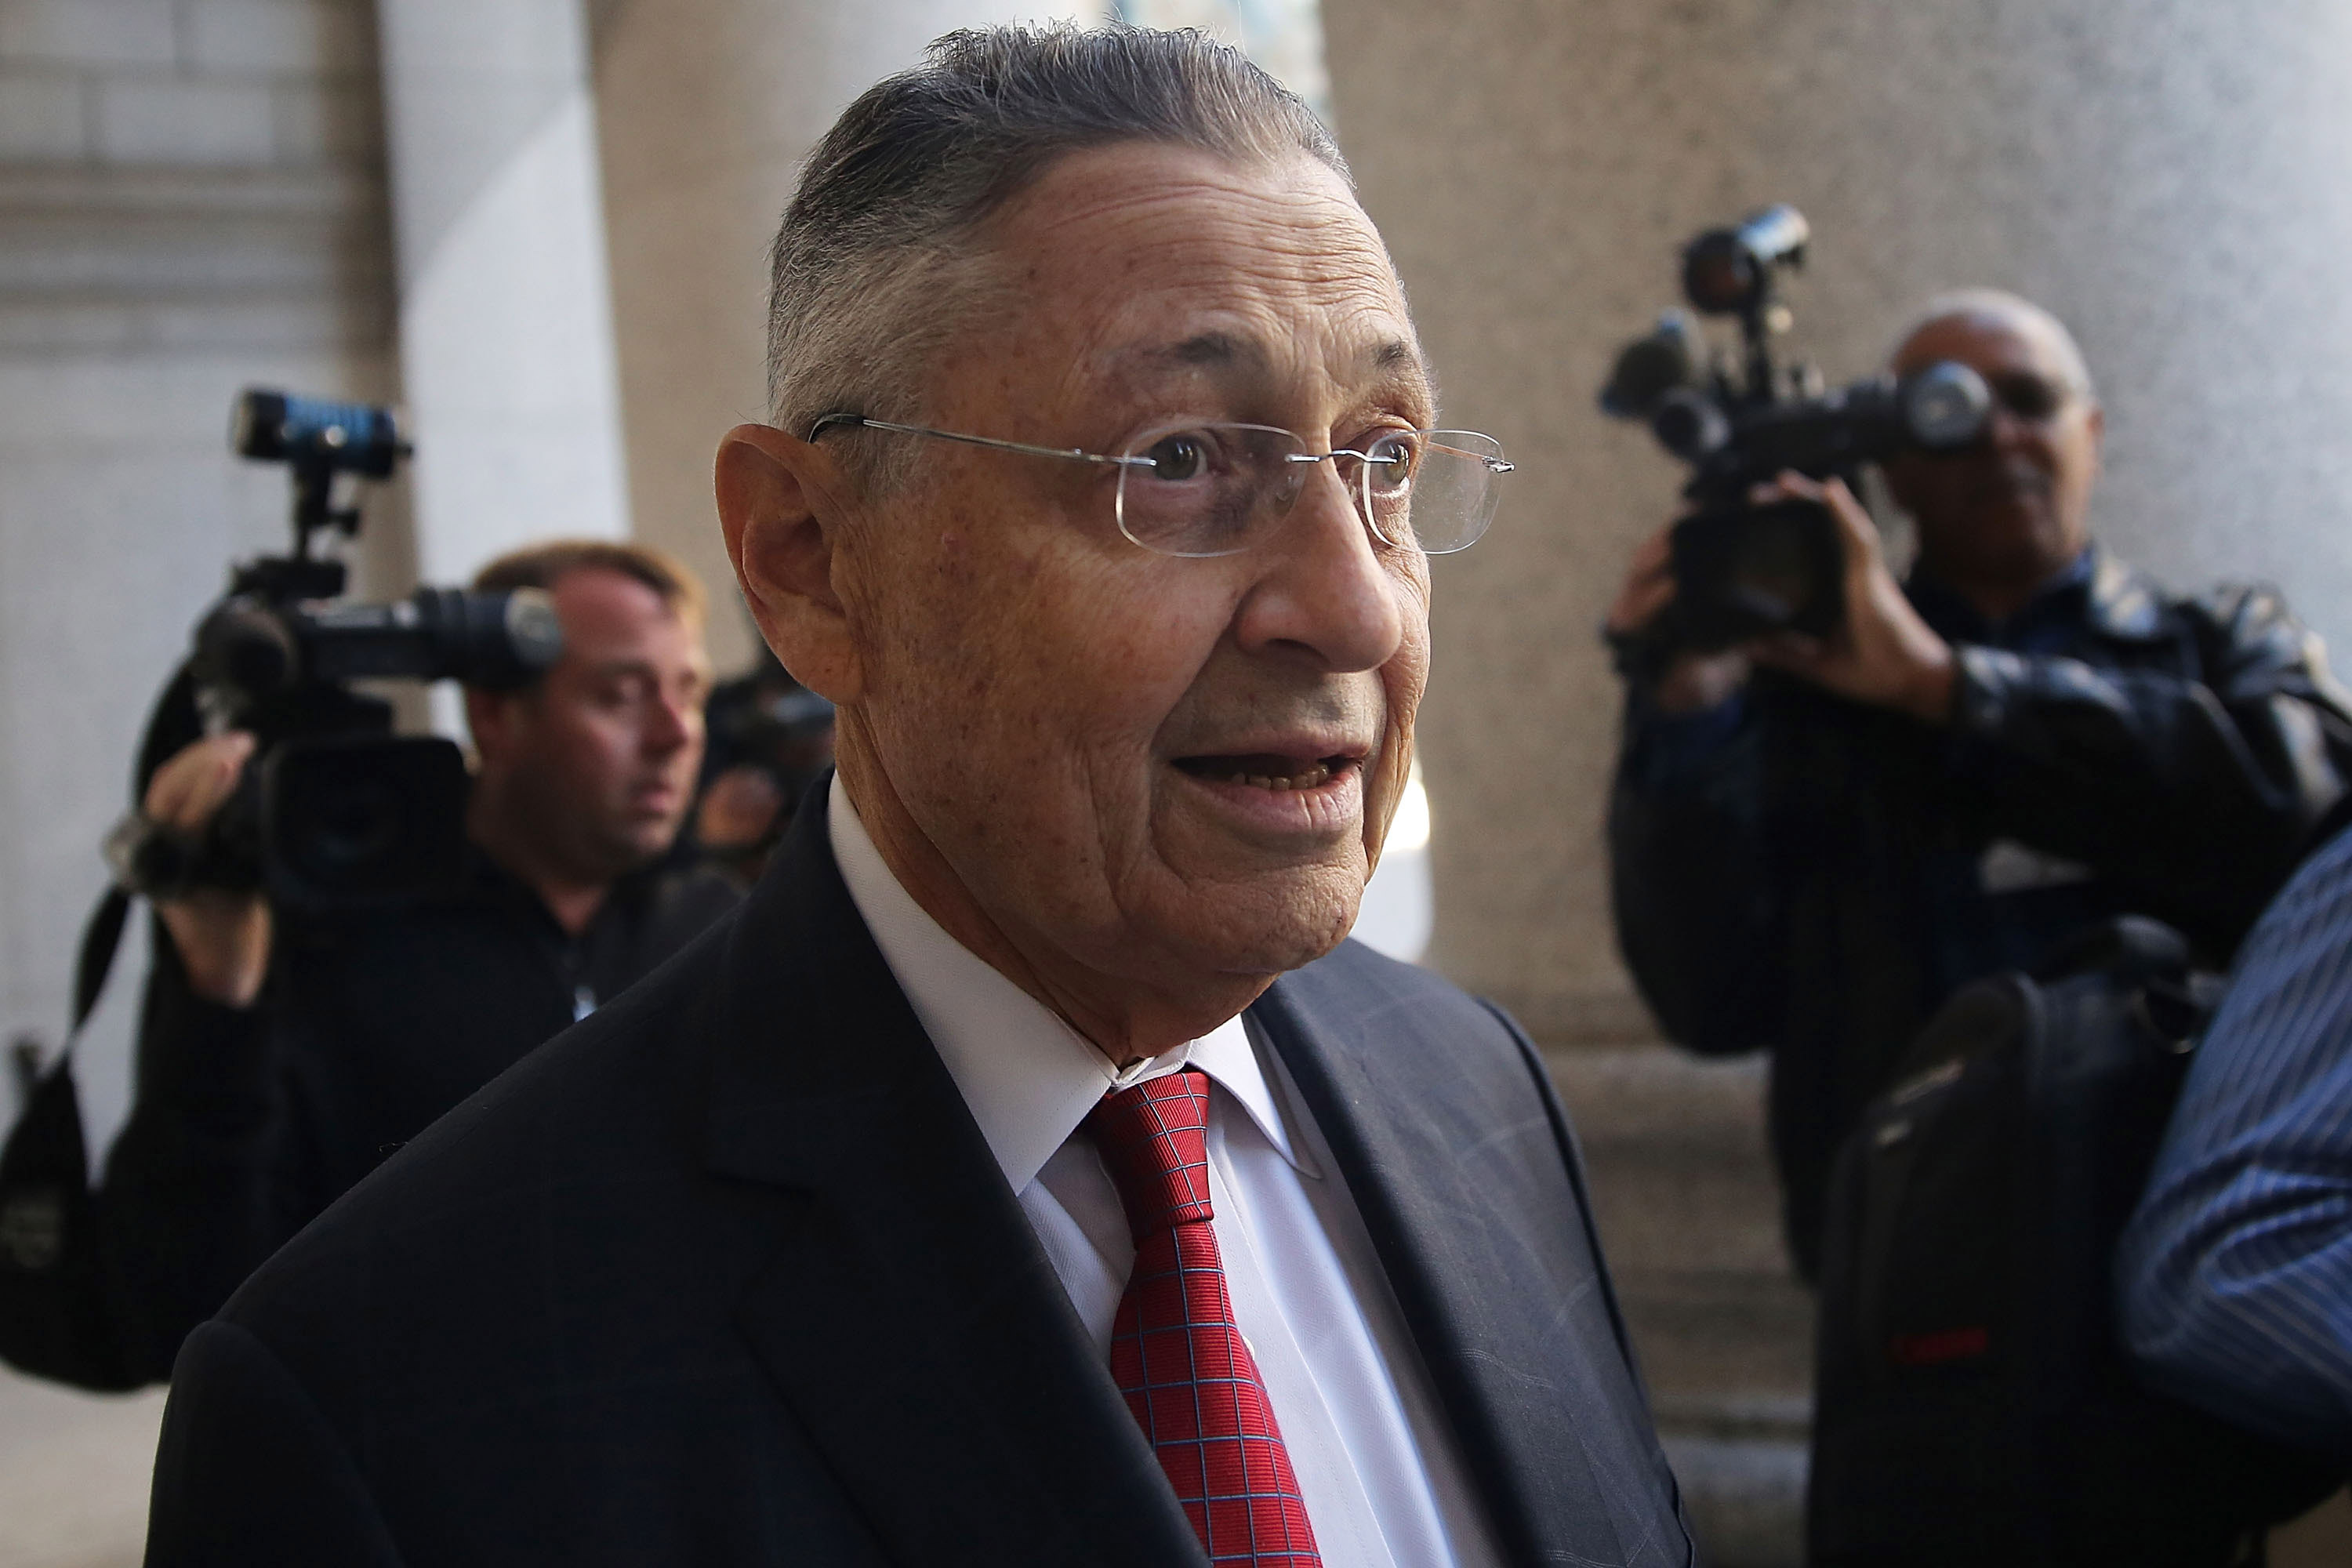 Former New York State Assembly Speaker Sheldon Silver arrives for his trial on November 3, 2015 in New York City. (Photo by Spencer Platt/Getty Images)